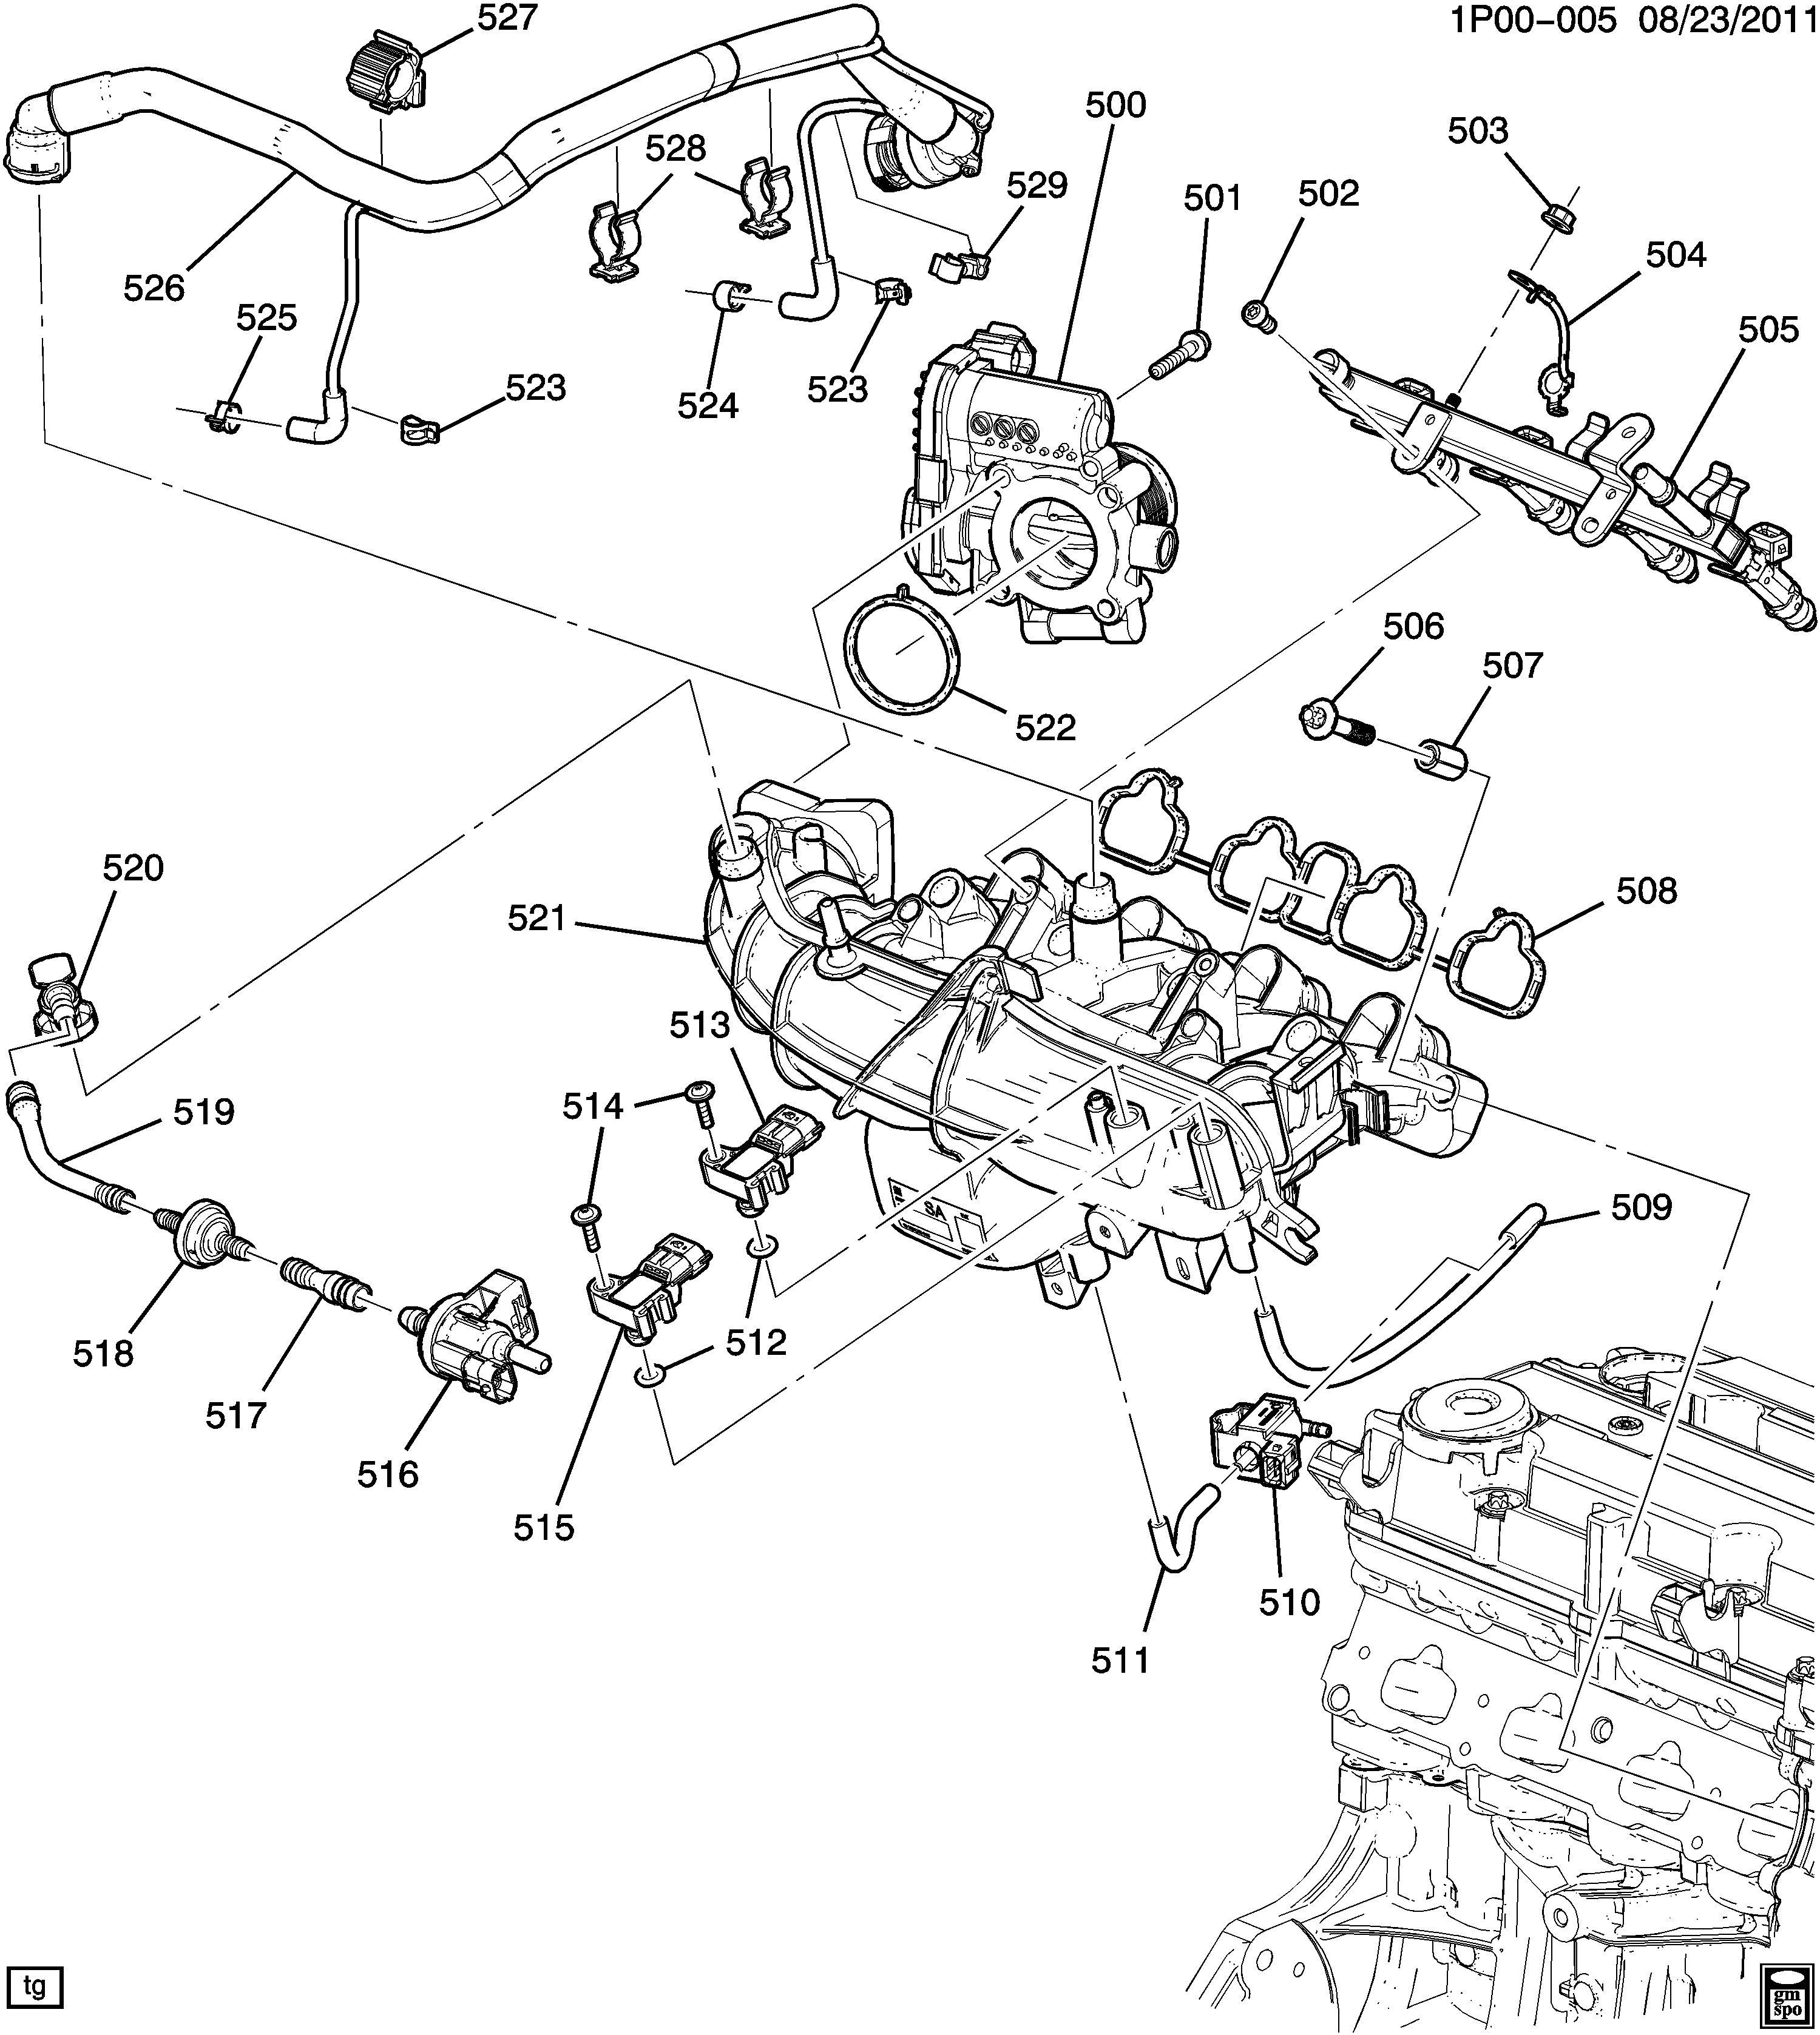 2013 Chevy Cruze Engine Parts Diagram Manual Guide